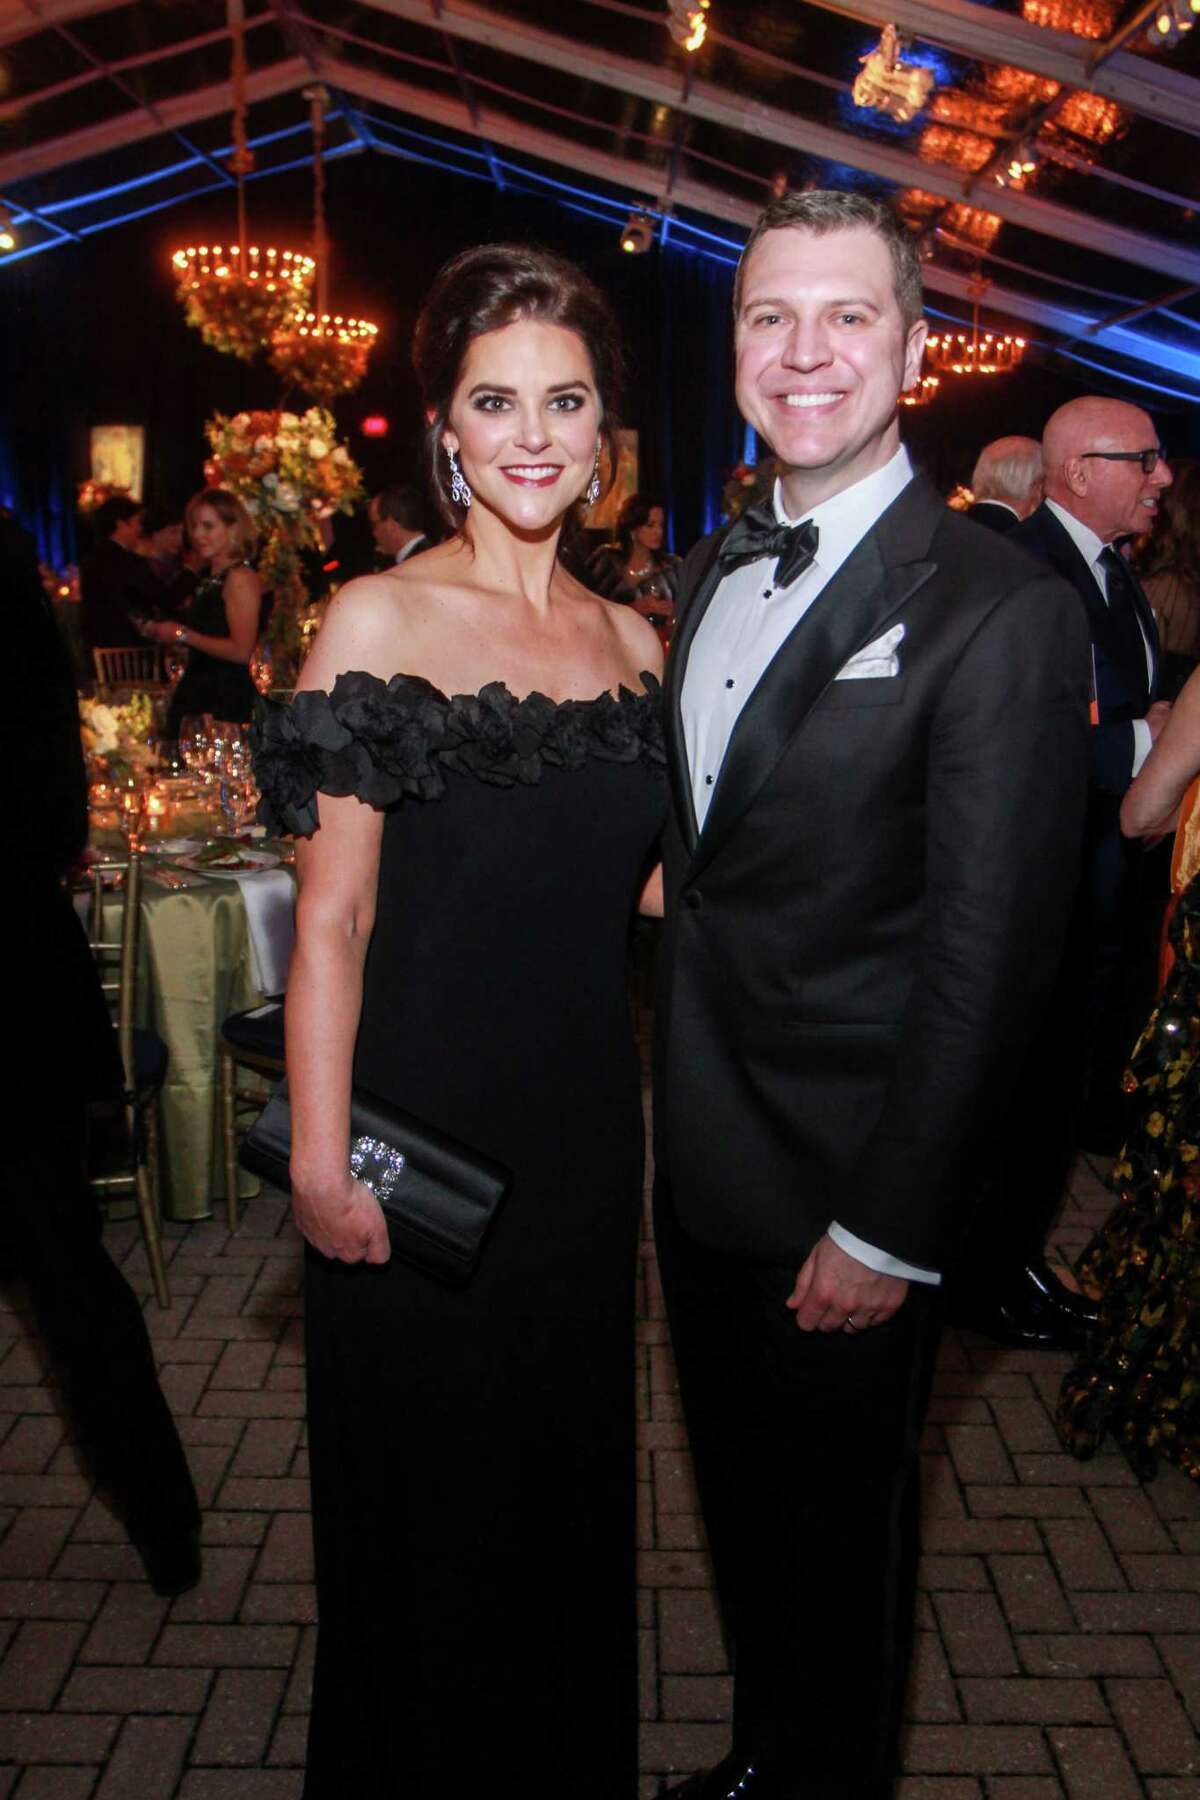 Ann and Jonathan Ayre at the Houston Grand Opera Opening Night Gala Dinner at the Wortham Theater Center in Houston on October 18, 2019.